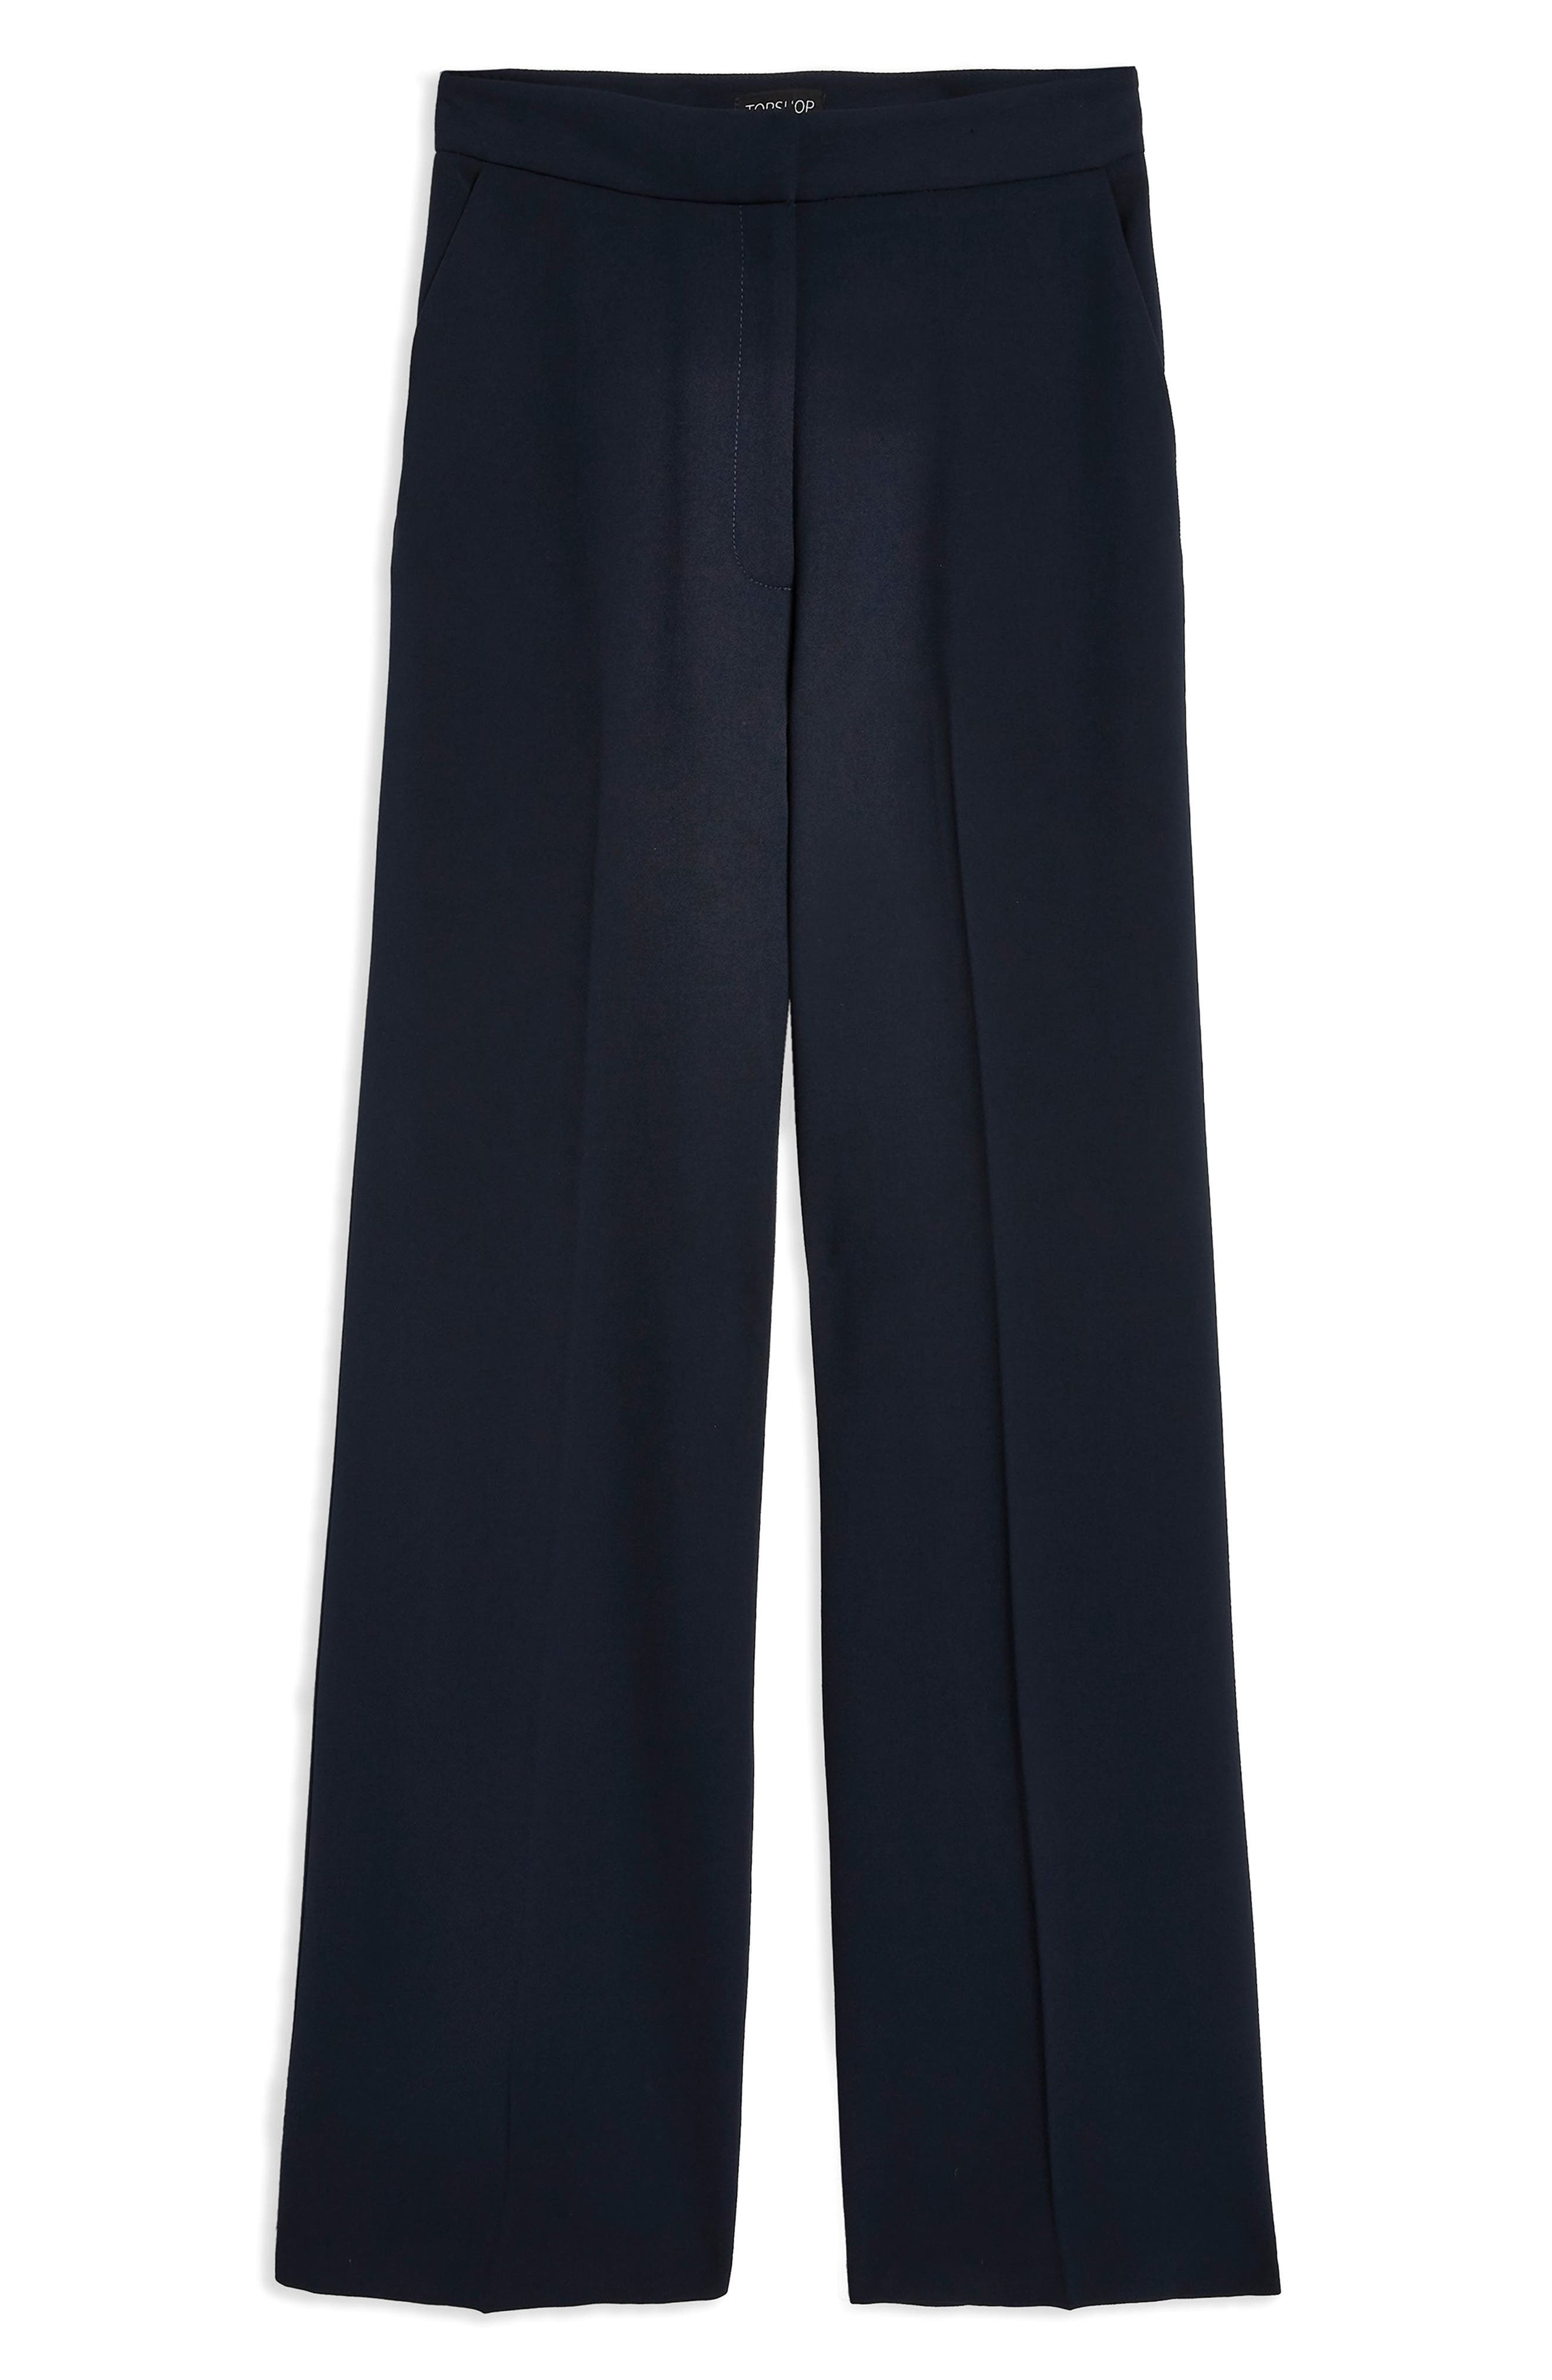 Clean High-Waist Wide Leg Trousers,                             Alternate thumbnail 6, color,                             NAVY BLUE